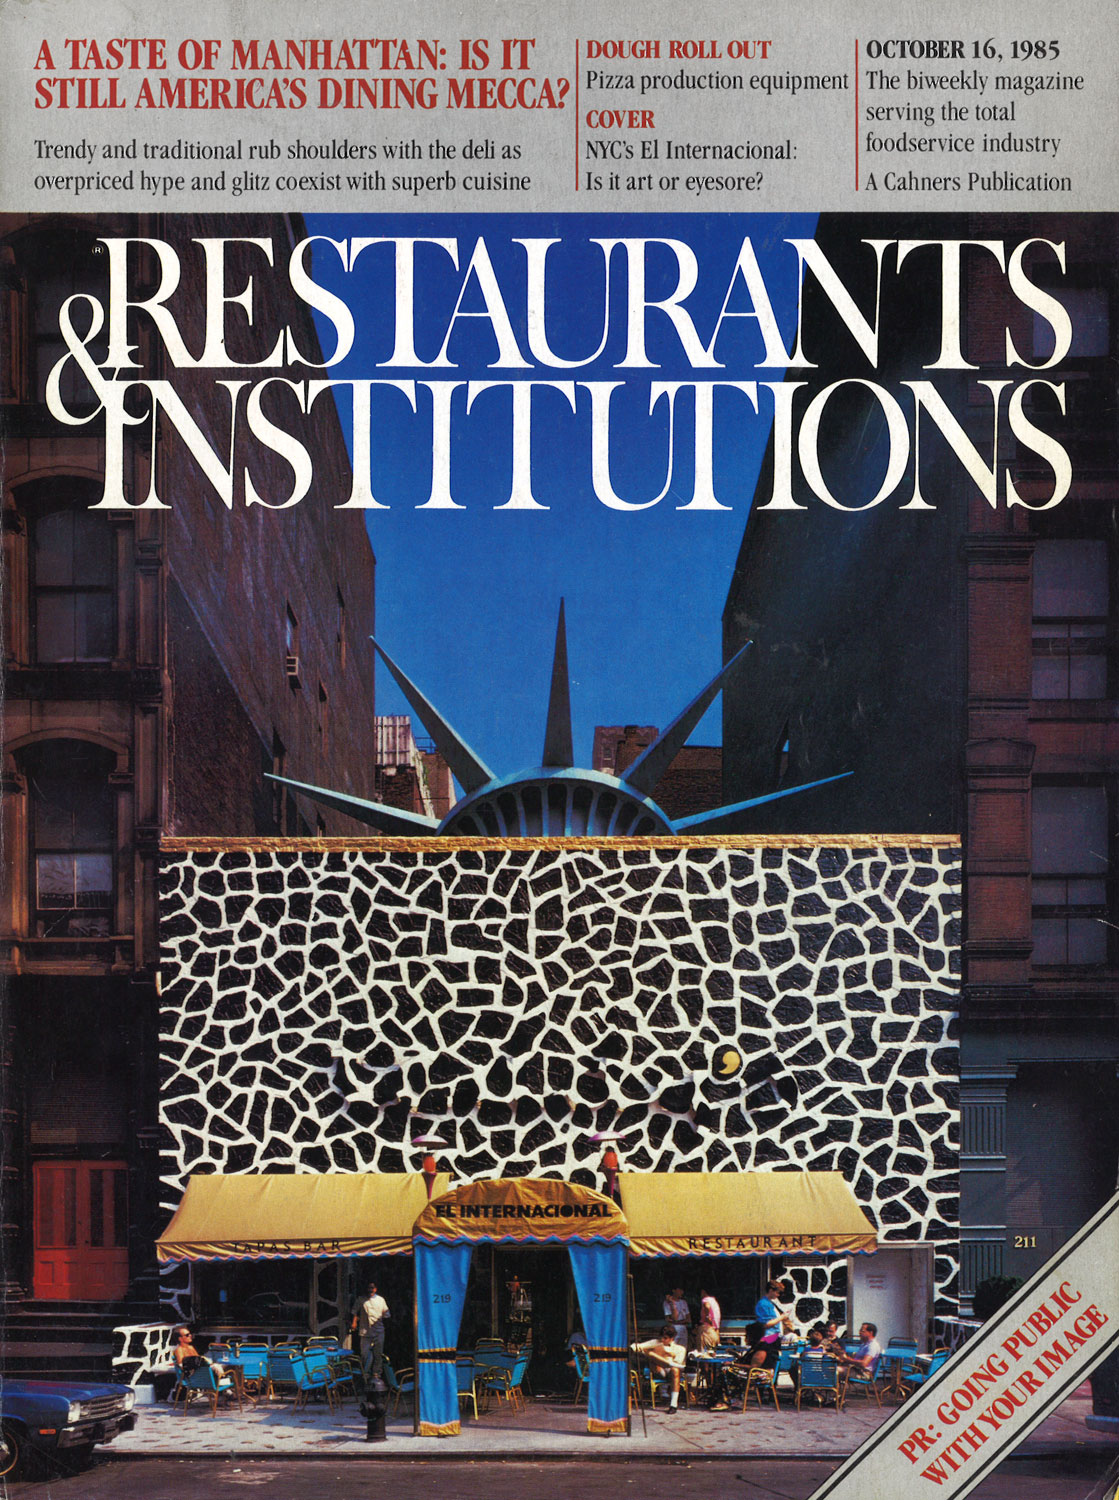 Restaurants-and-Institutions-16OCT85